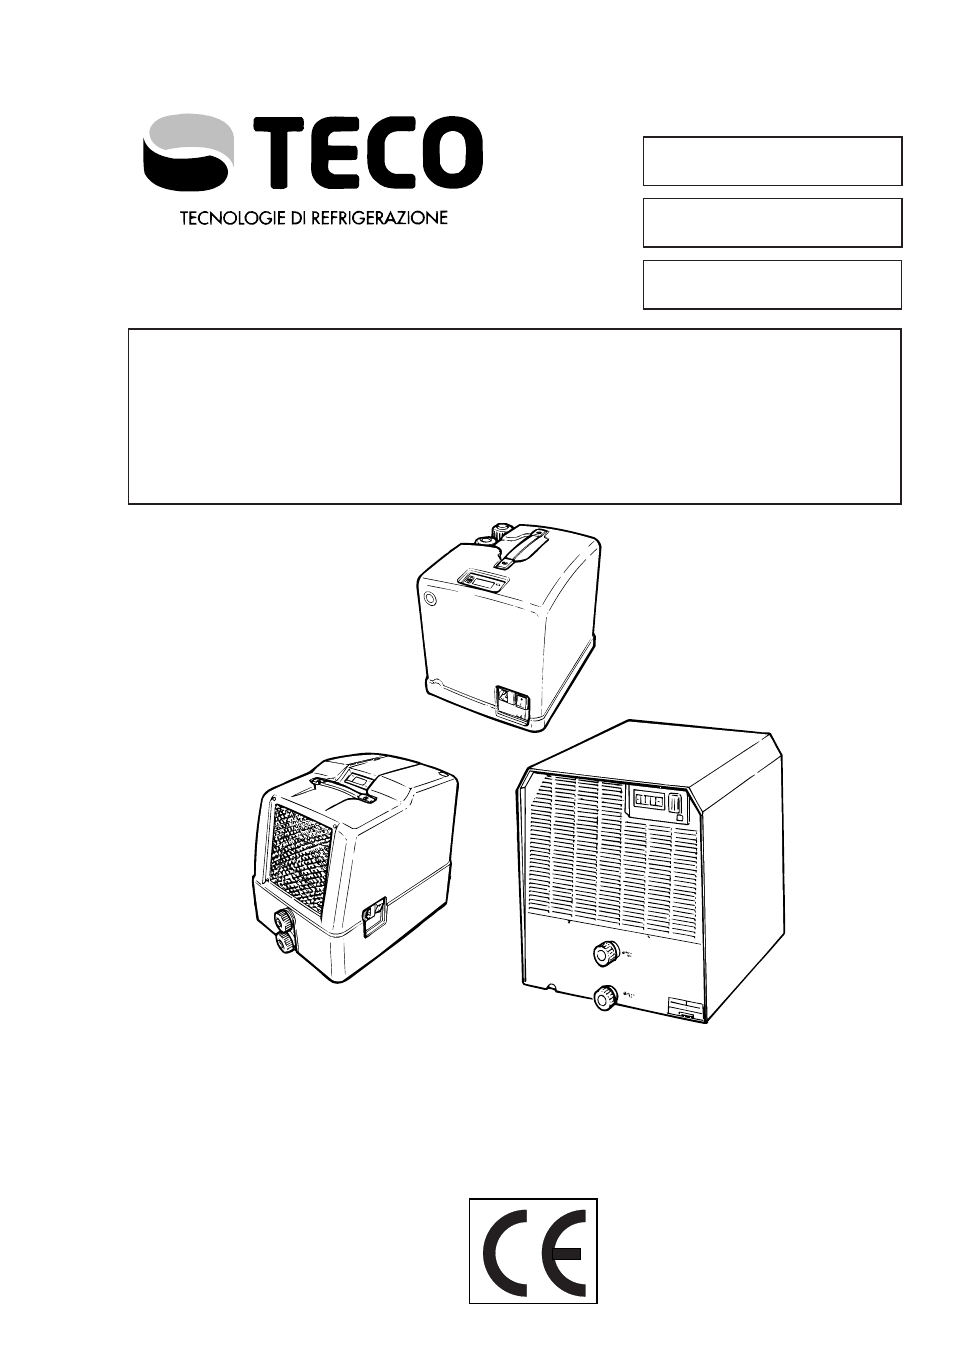 teco us teco ra user manual 60 pages also for teco ca rh manualsdir com teco split system air conditioner manual teco window air conditioner manual